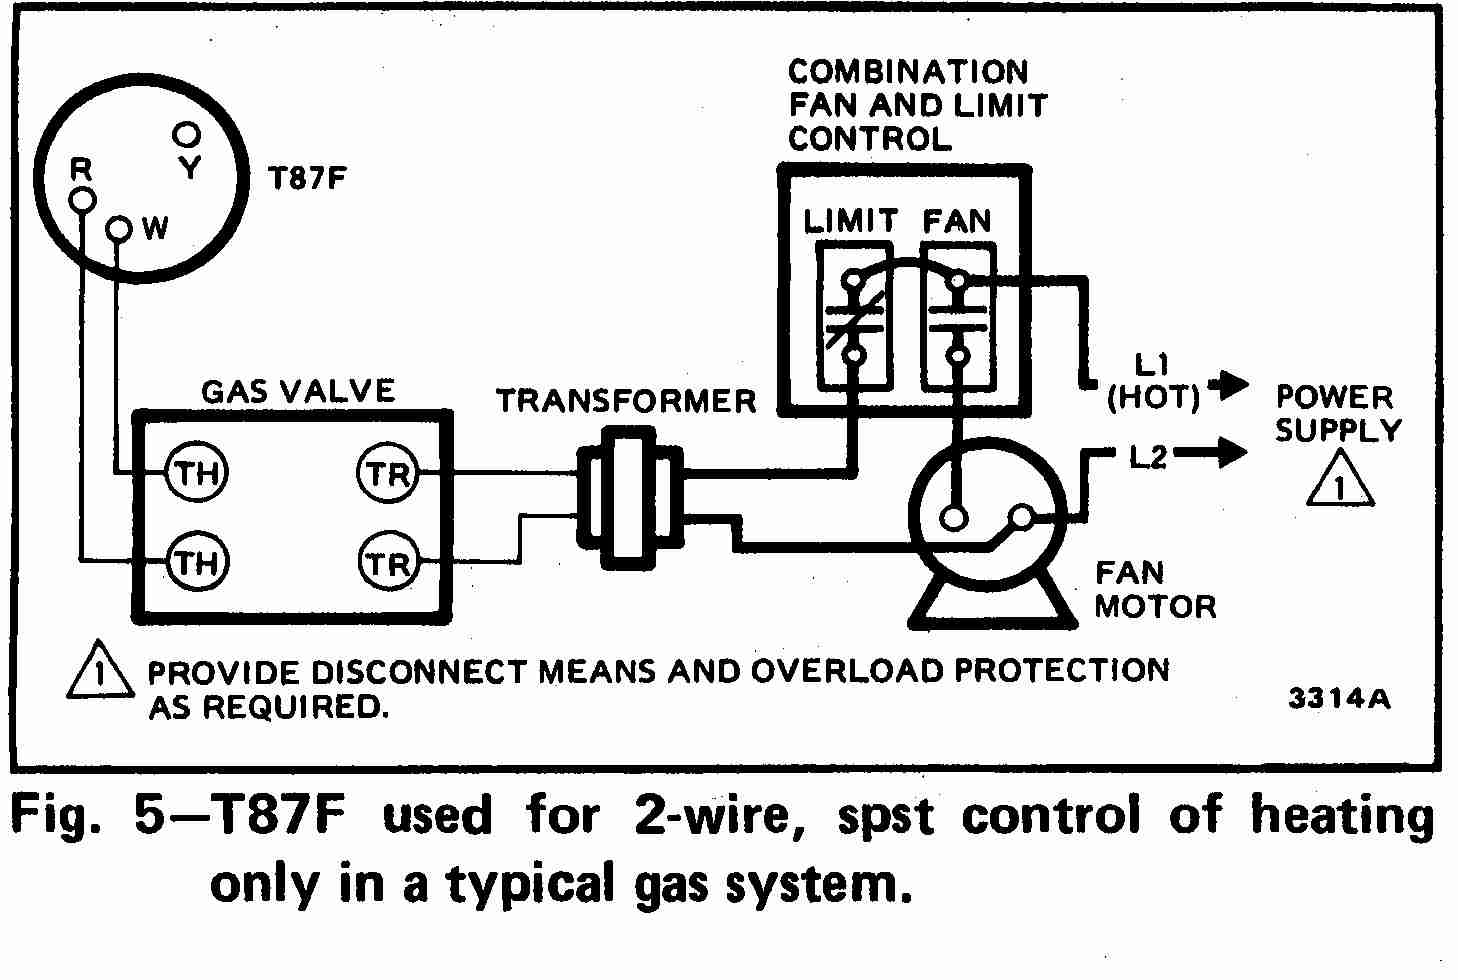 TT_T87F_0002_2Wg_DJF zone valve wiring installation & instructions guide to heating thermostat wiring diagram at creativeand.co